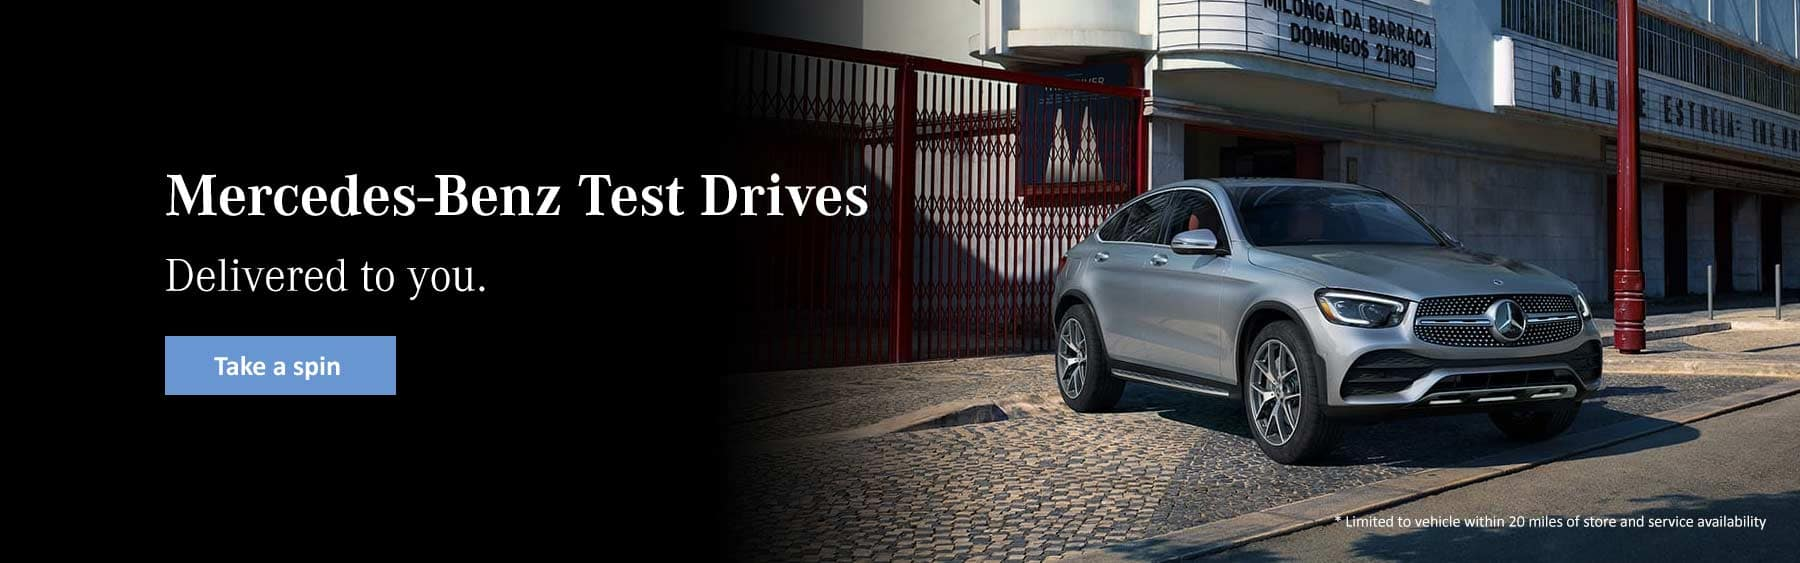 mercedes-benz test drives delivered nearby